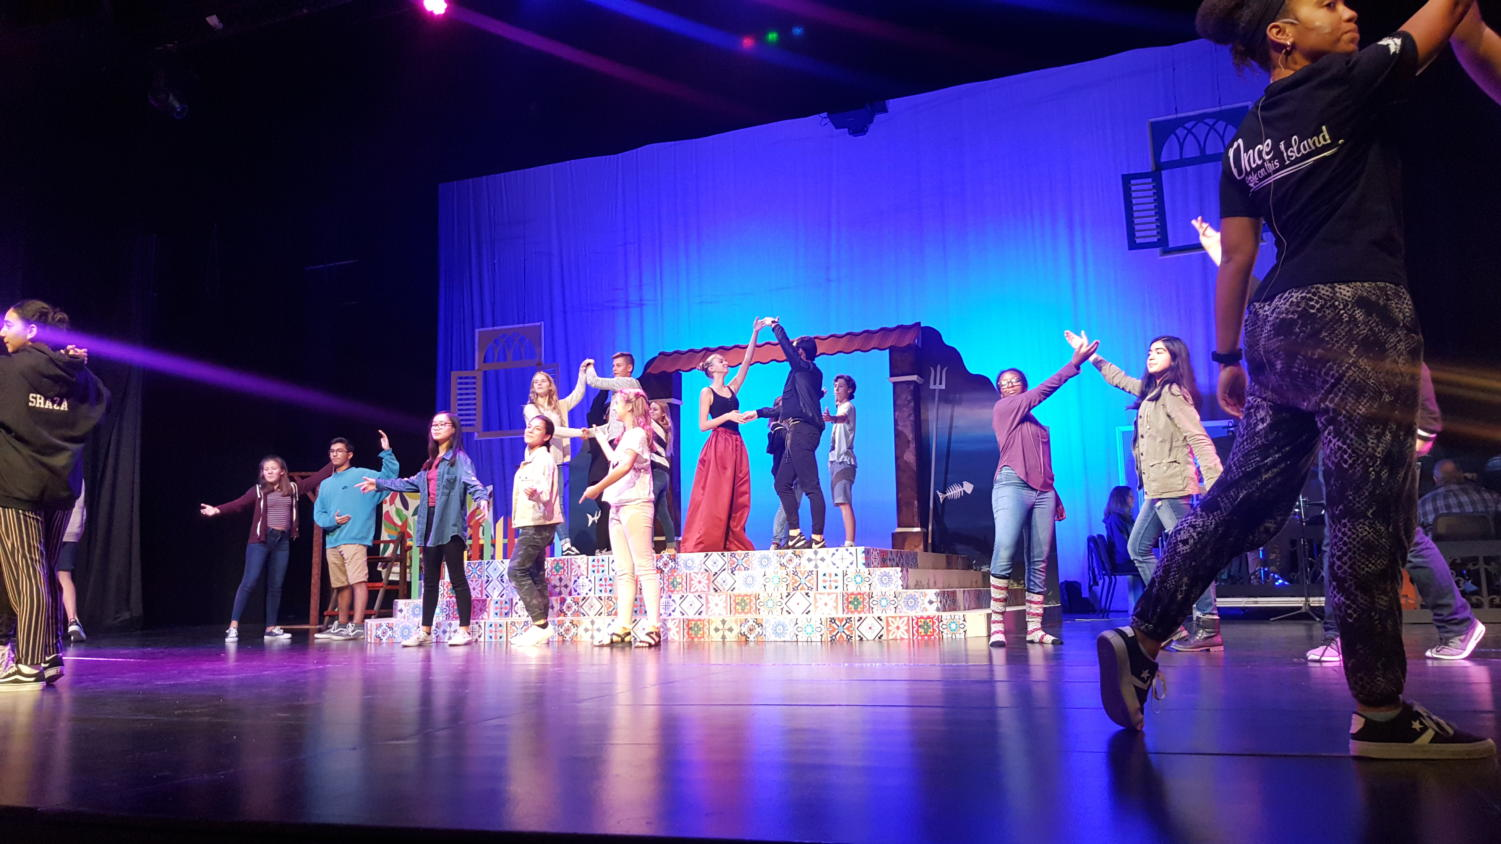 ASD cast practices the musical number